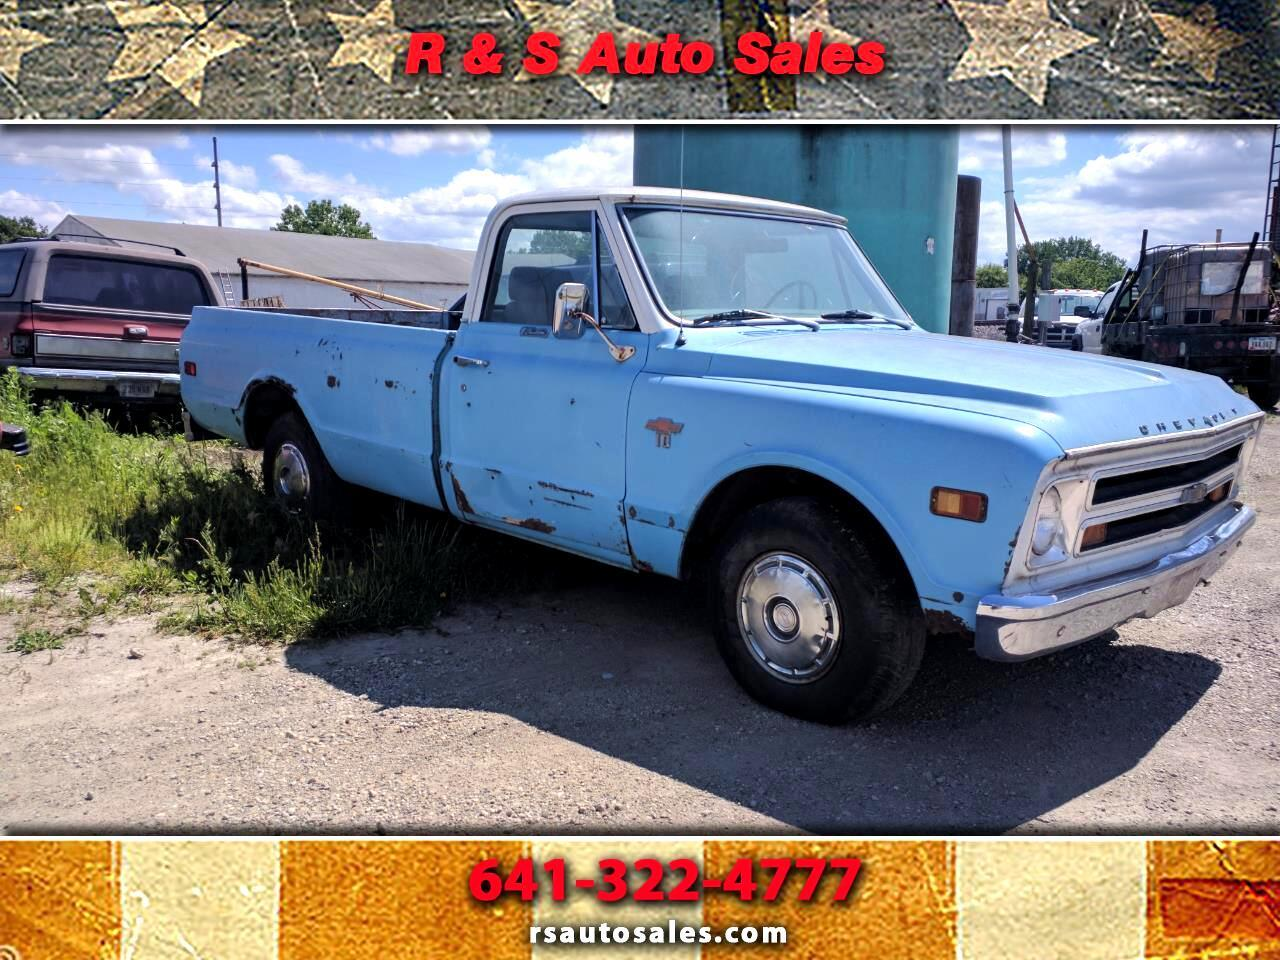 1968 chevrolet c10 for sale classiccars com cc 1170849 classic cars